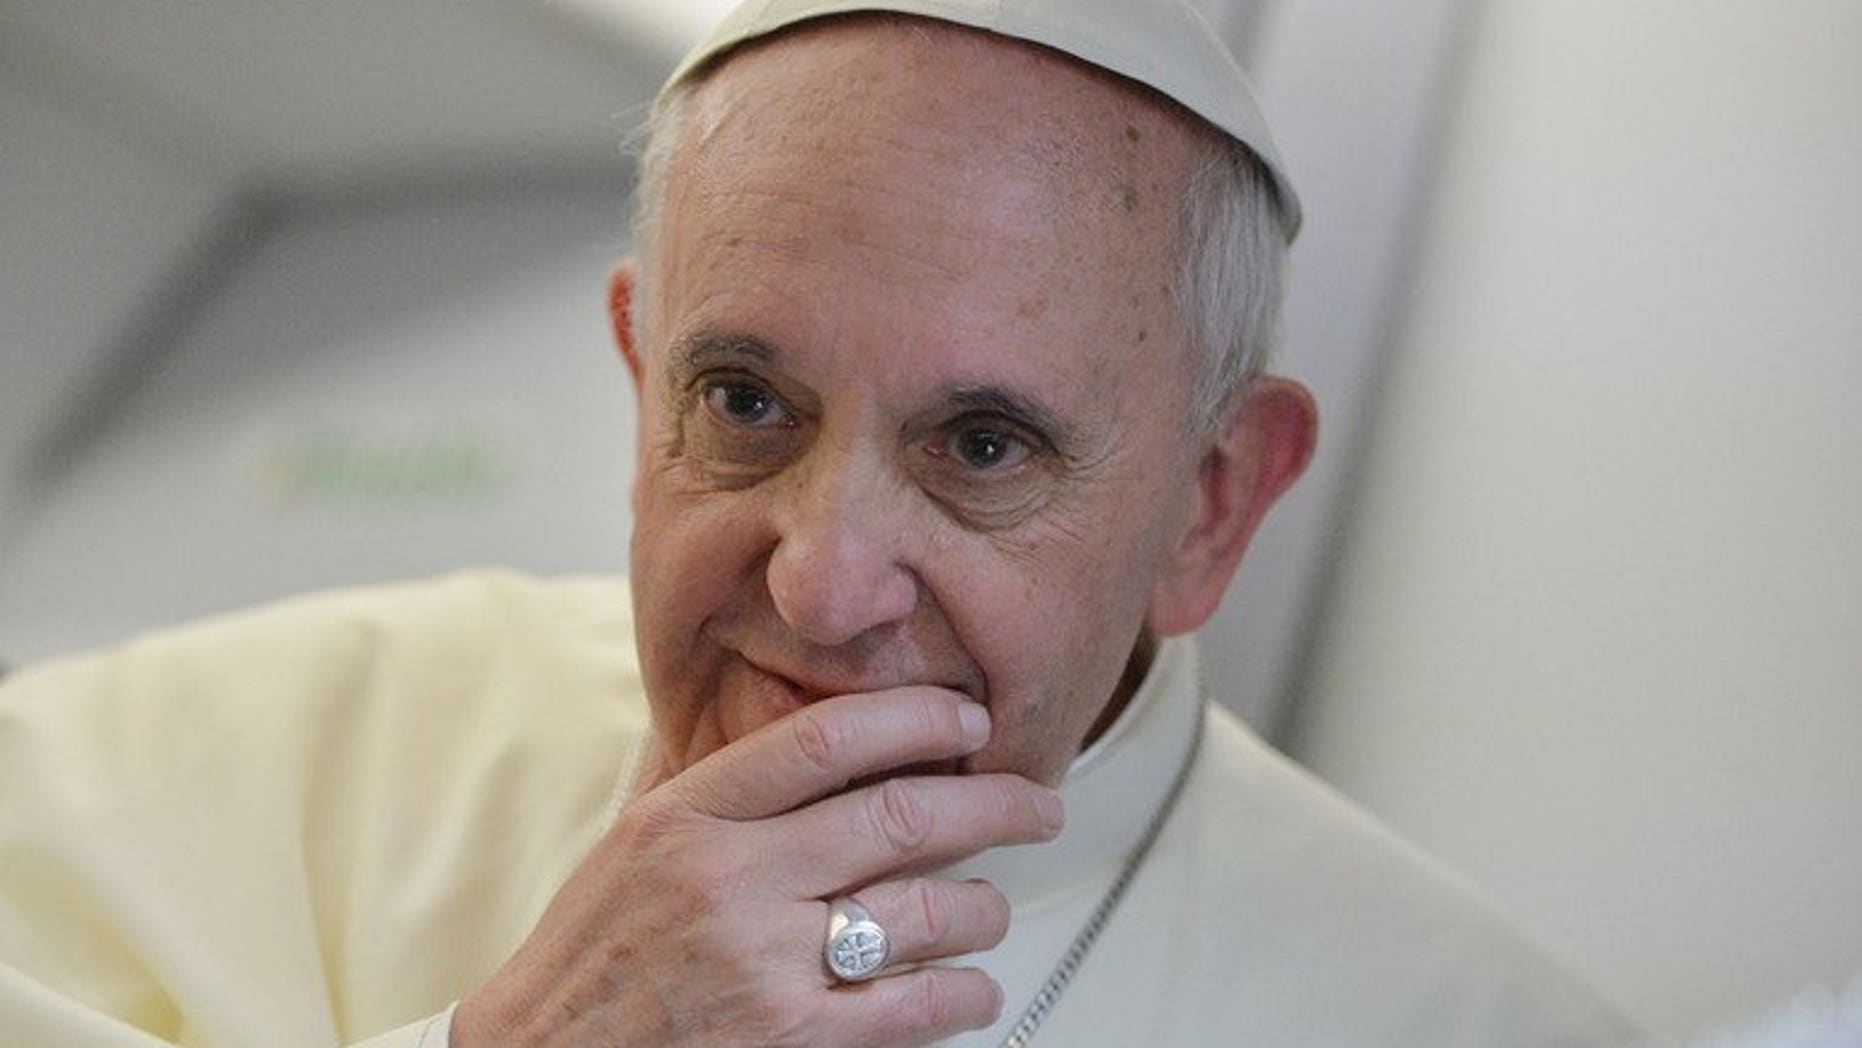 """Pope Francis listens to a question during a press conference held aboard the papal flight on July 28, 2013. The pontiff has called for """"mutual respect"""" between Christianity and Islam and an end to """"unfair criticism"""" in a personal message congratulating Muslims on the feast of Eid al-Fitr."""